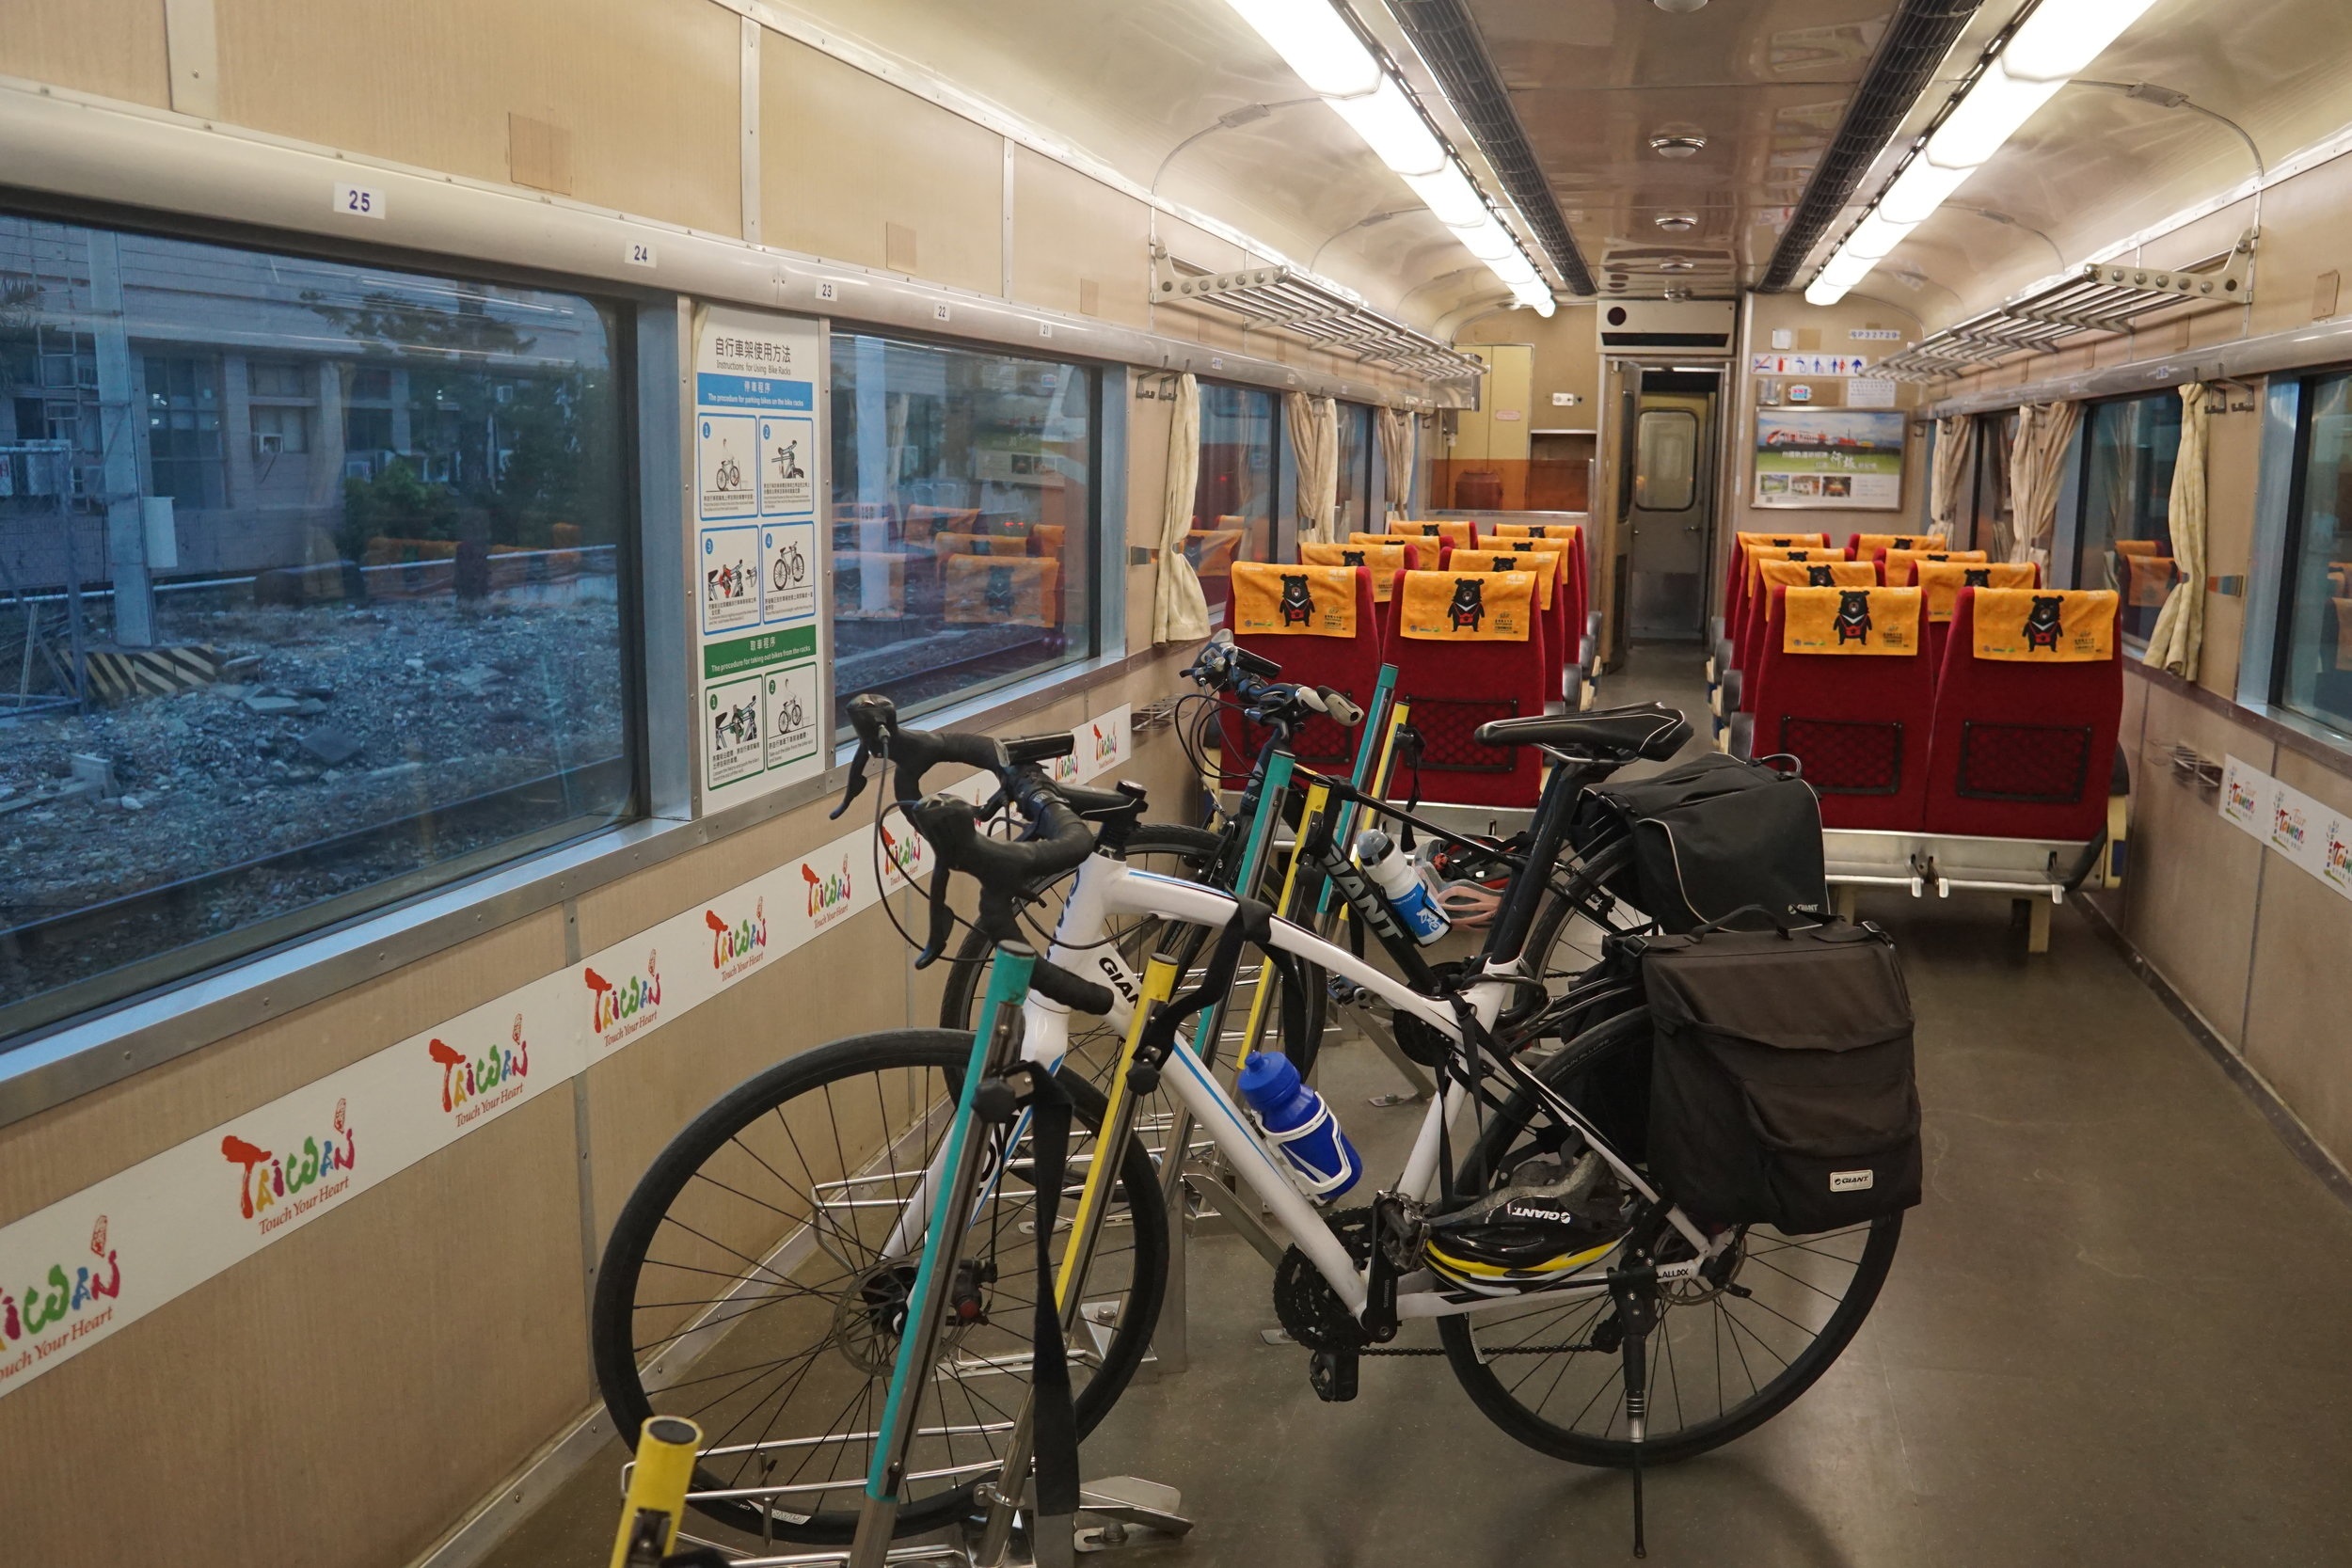 Our bikes that we shipped onto the train from taitung towards kaohsiung